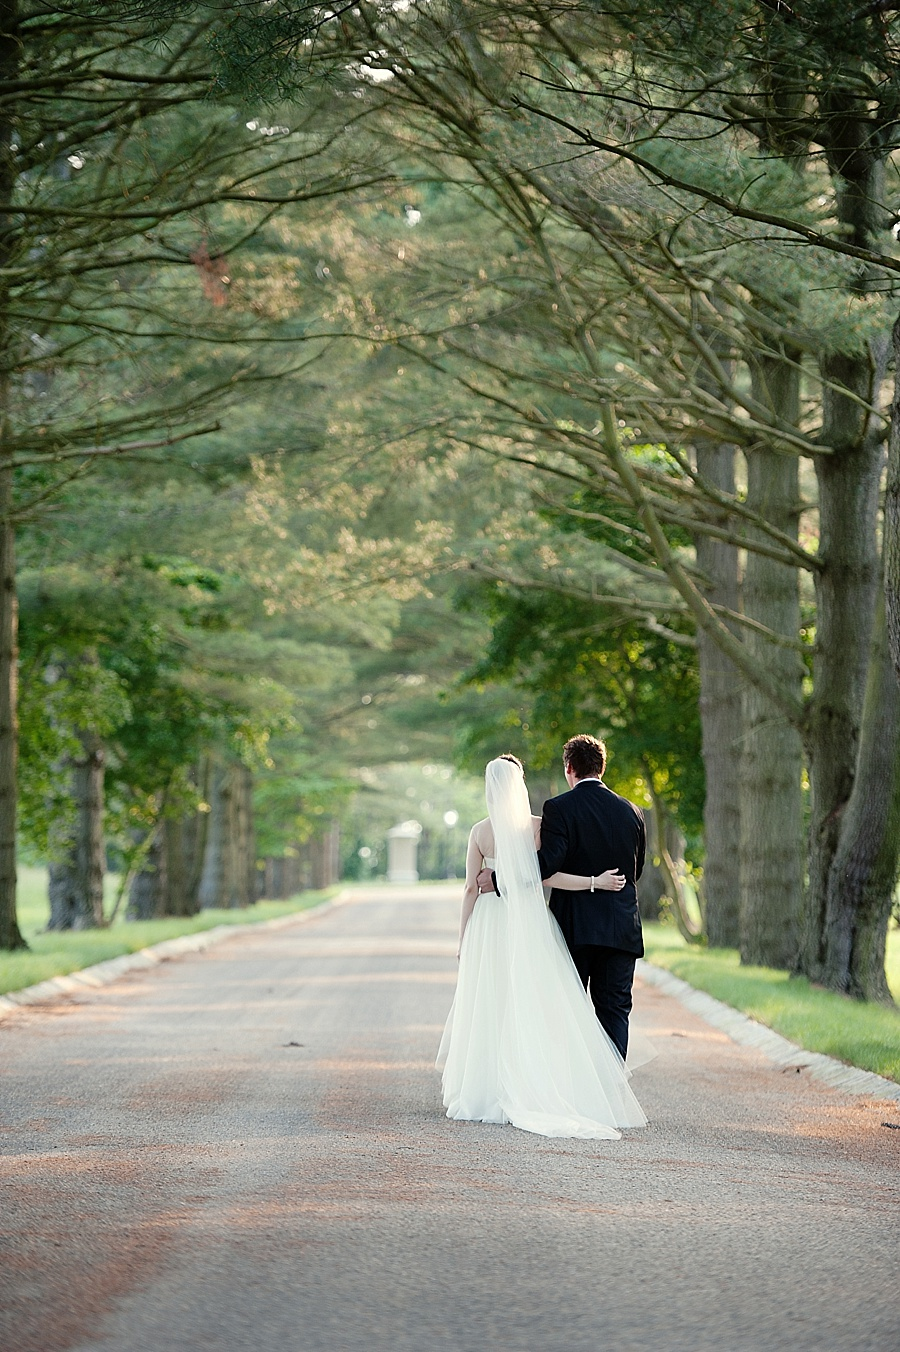 NJ_WEDDING_VENUE_ASHFORD_ESTATE_023.jpg